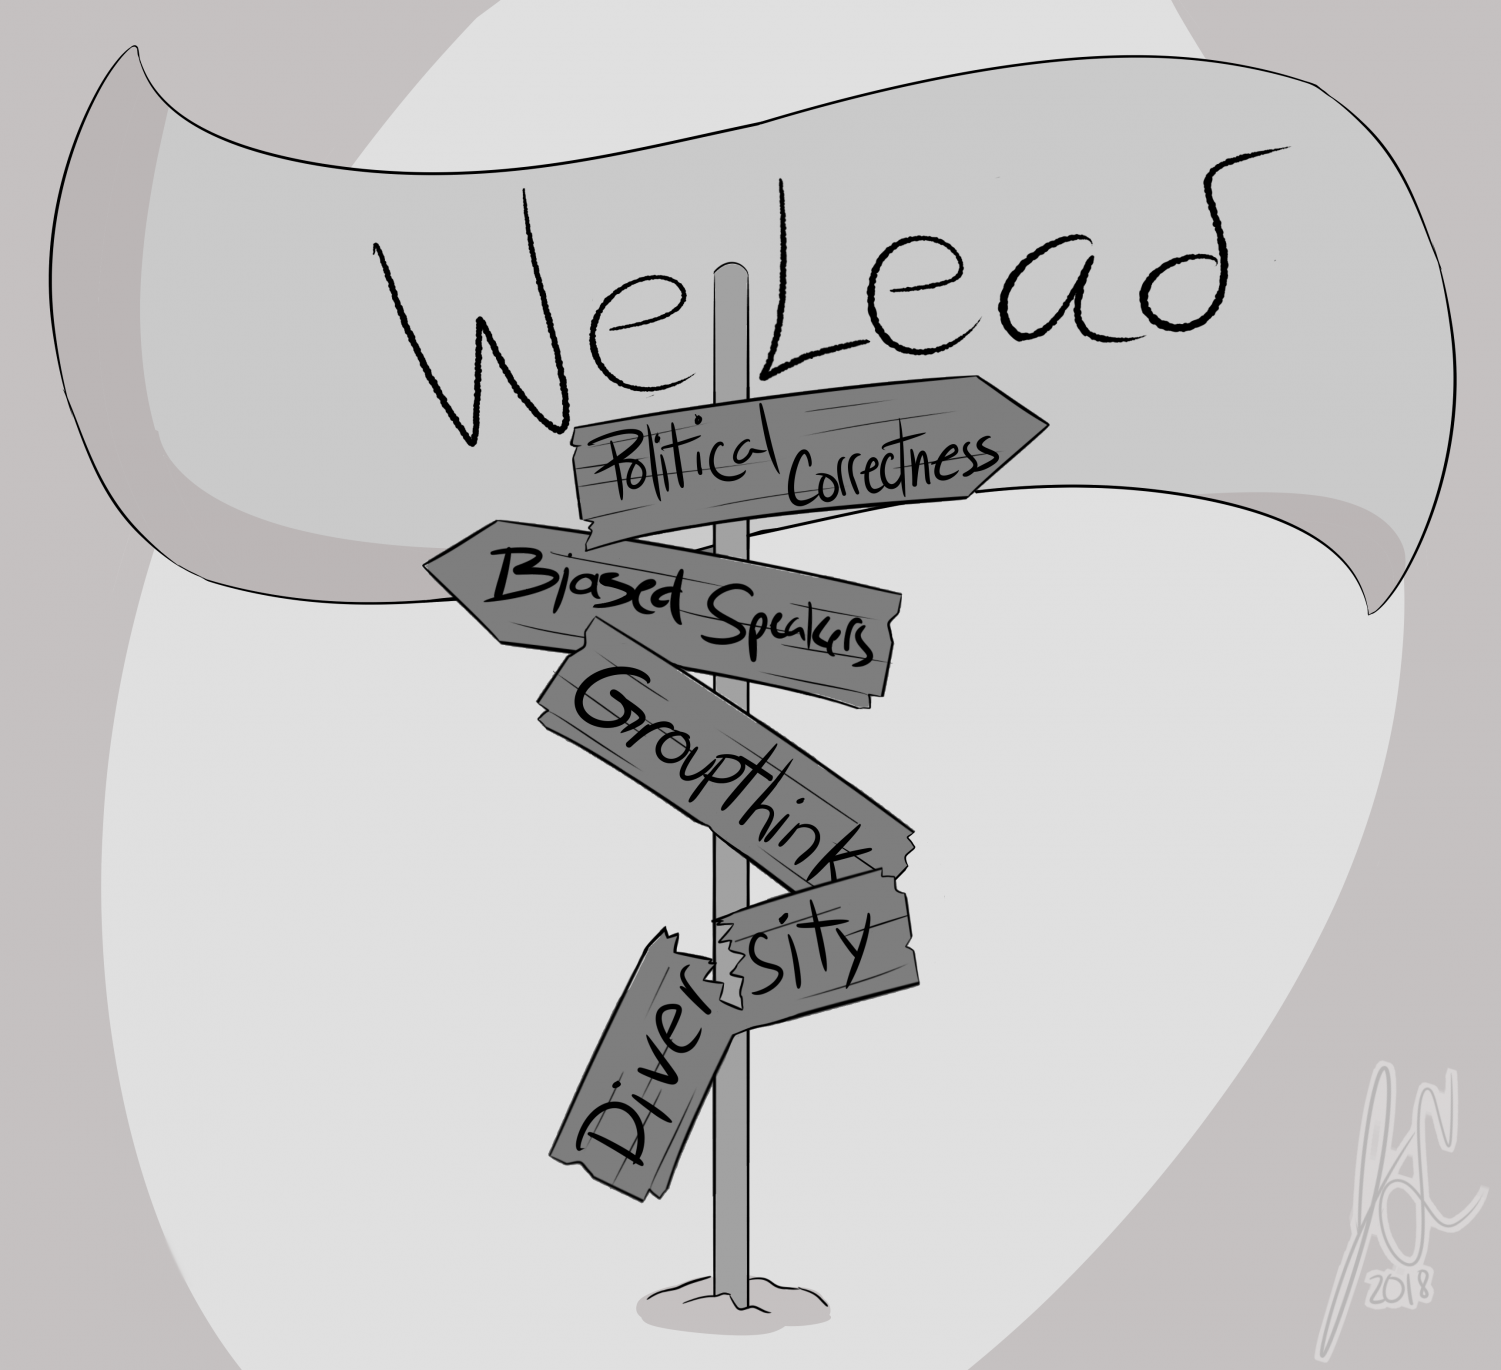 FAU holds the WeLead conference in the Spring semester. Illustration by Joey Sena